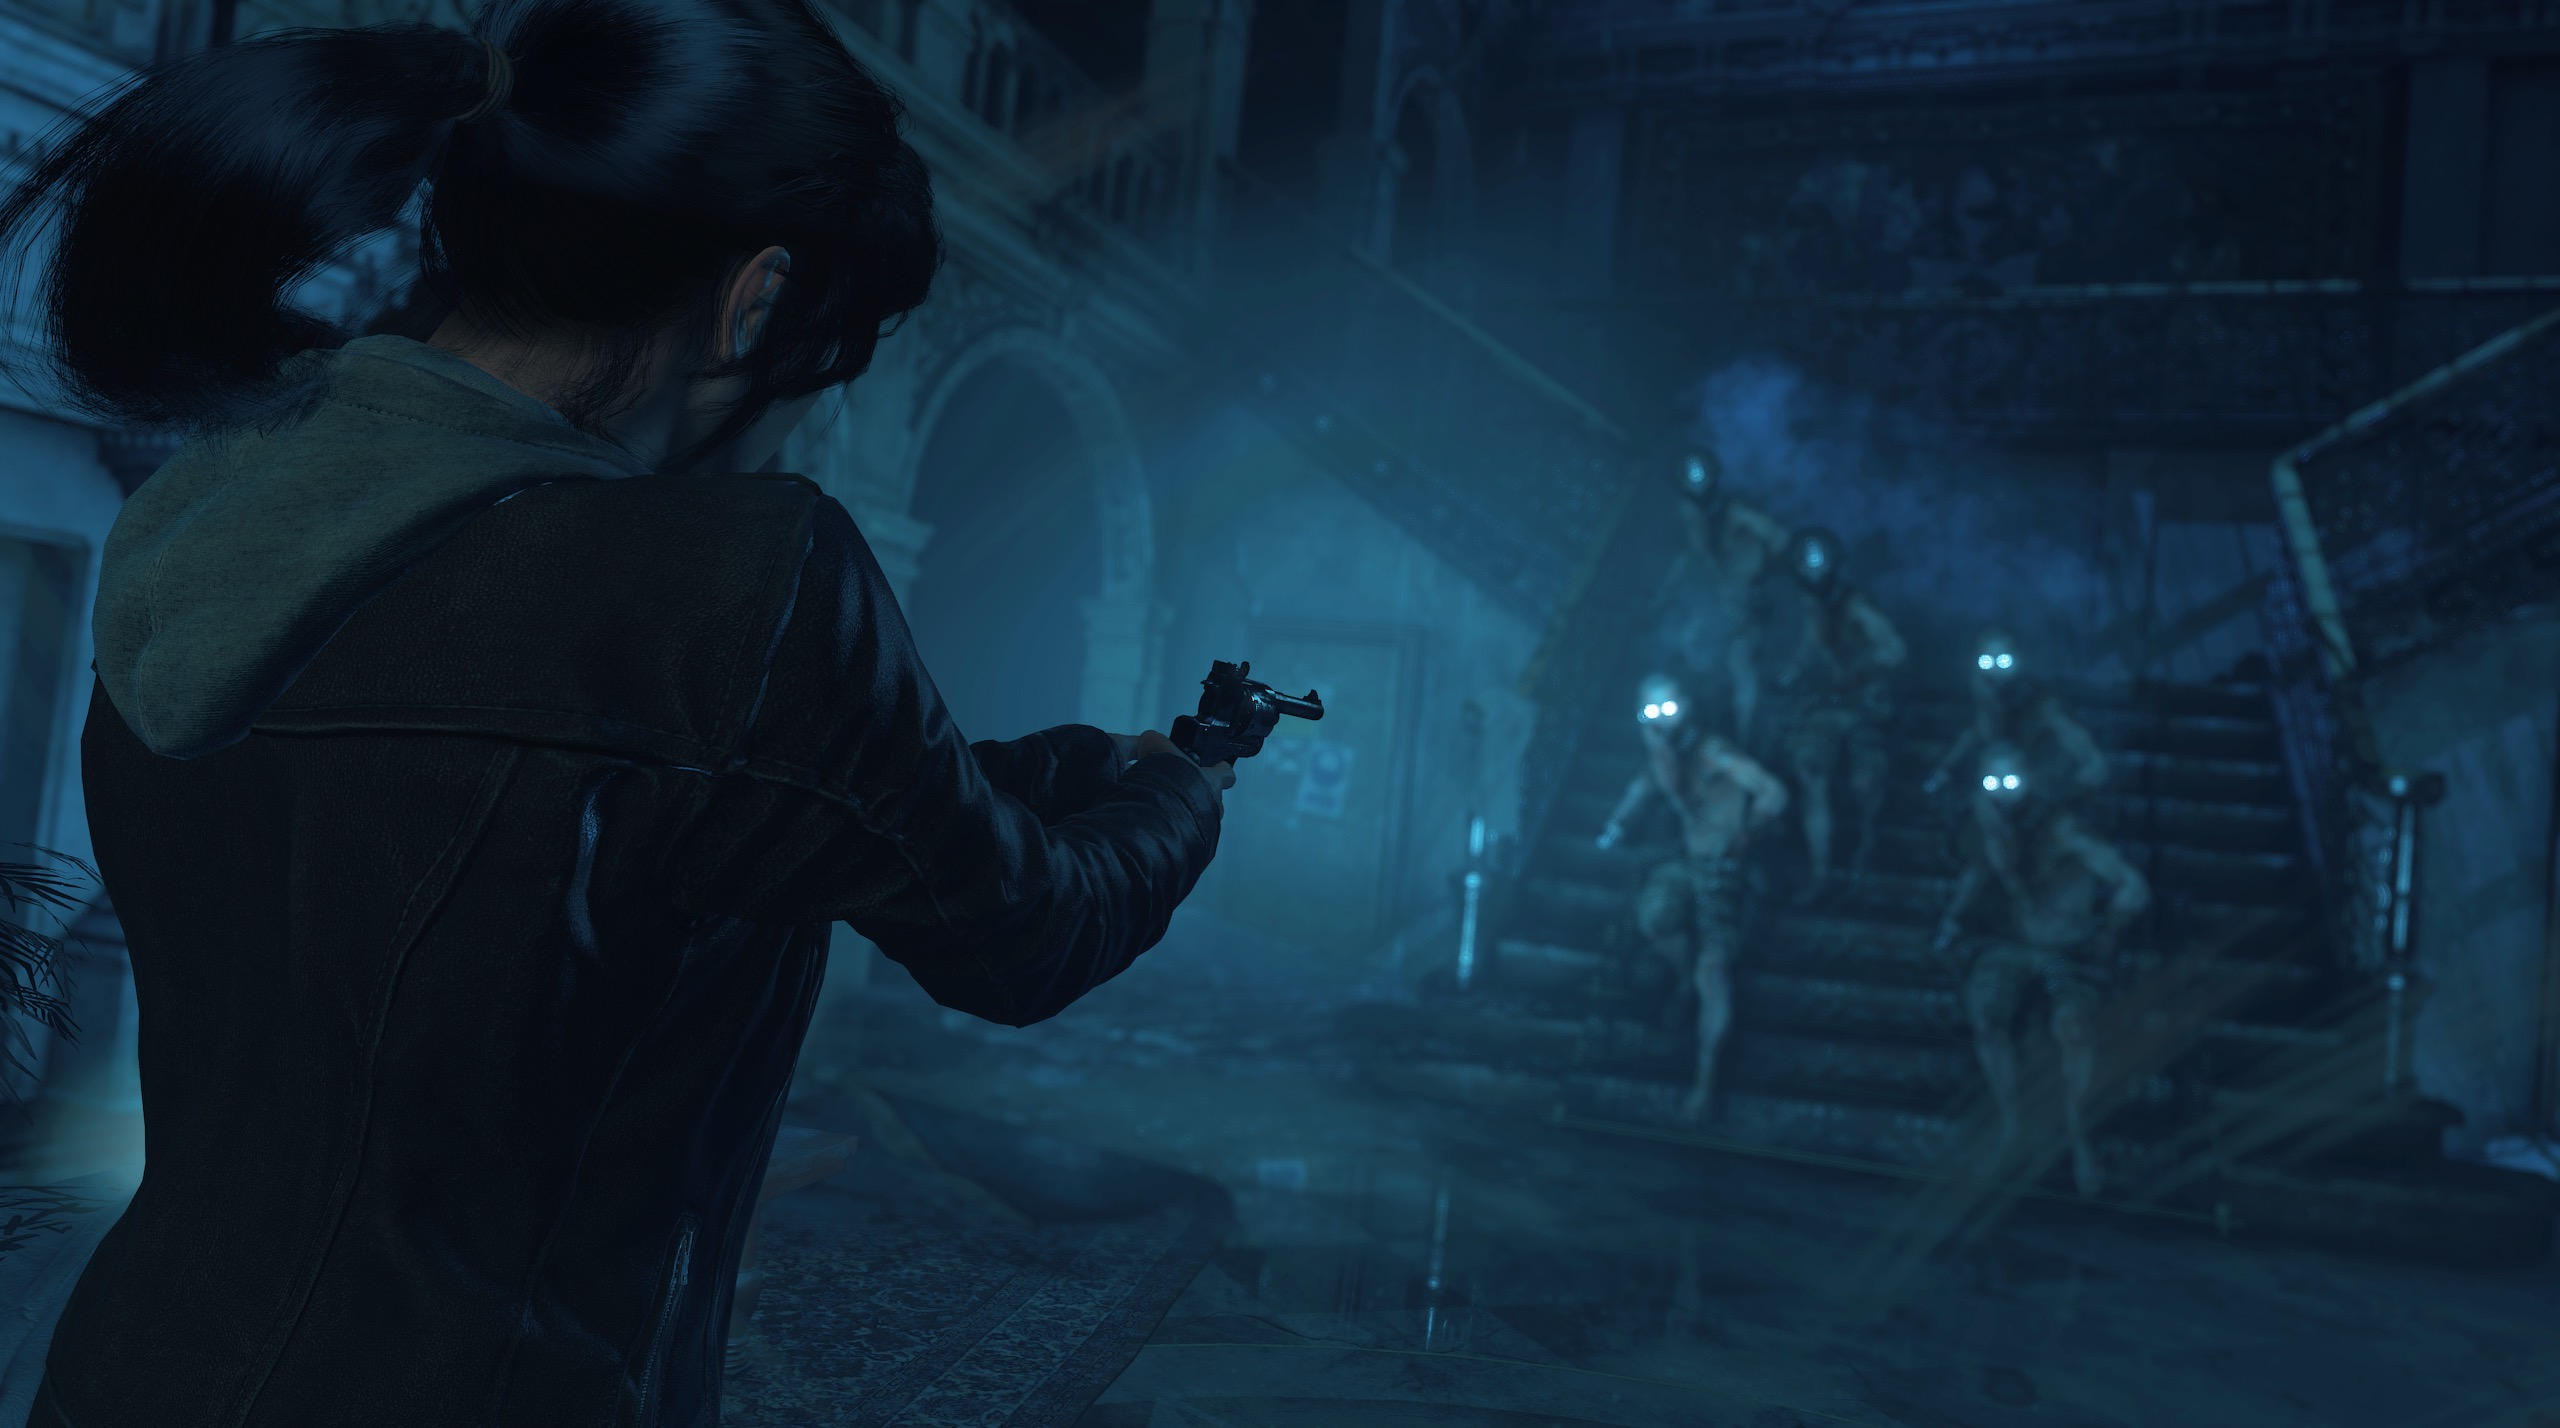 Unwrap Vr Co Op And Zombies In New Tomb Raider Dlc For